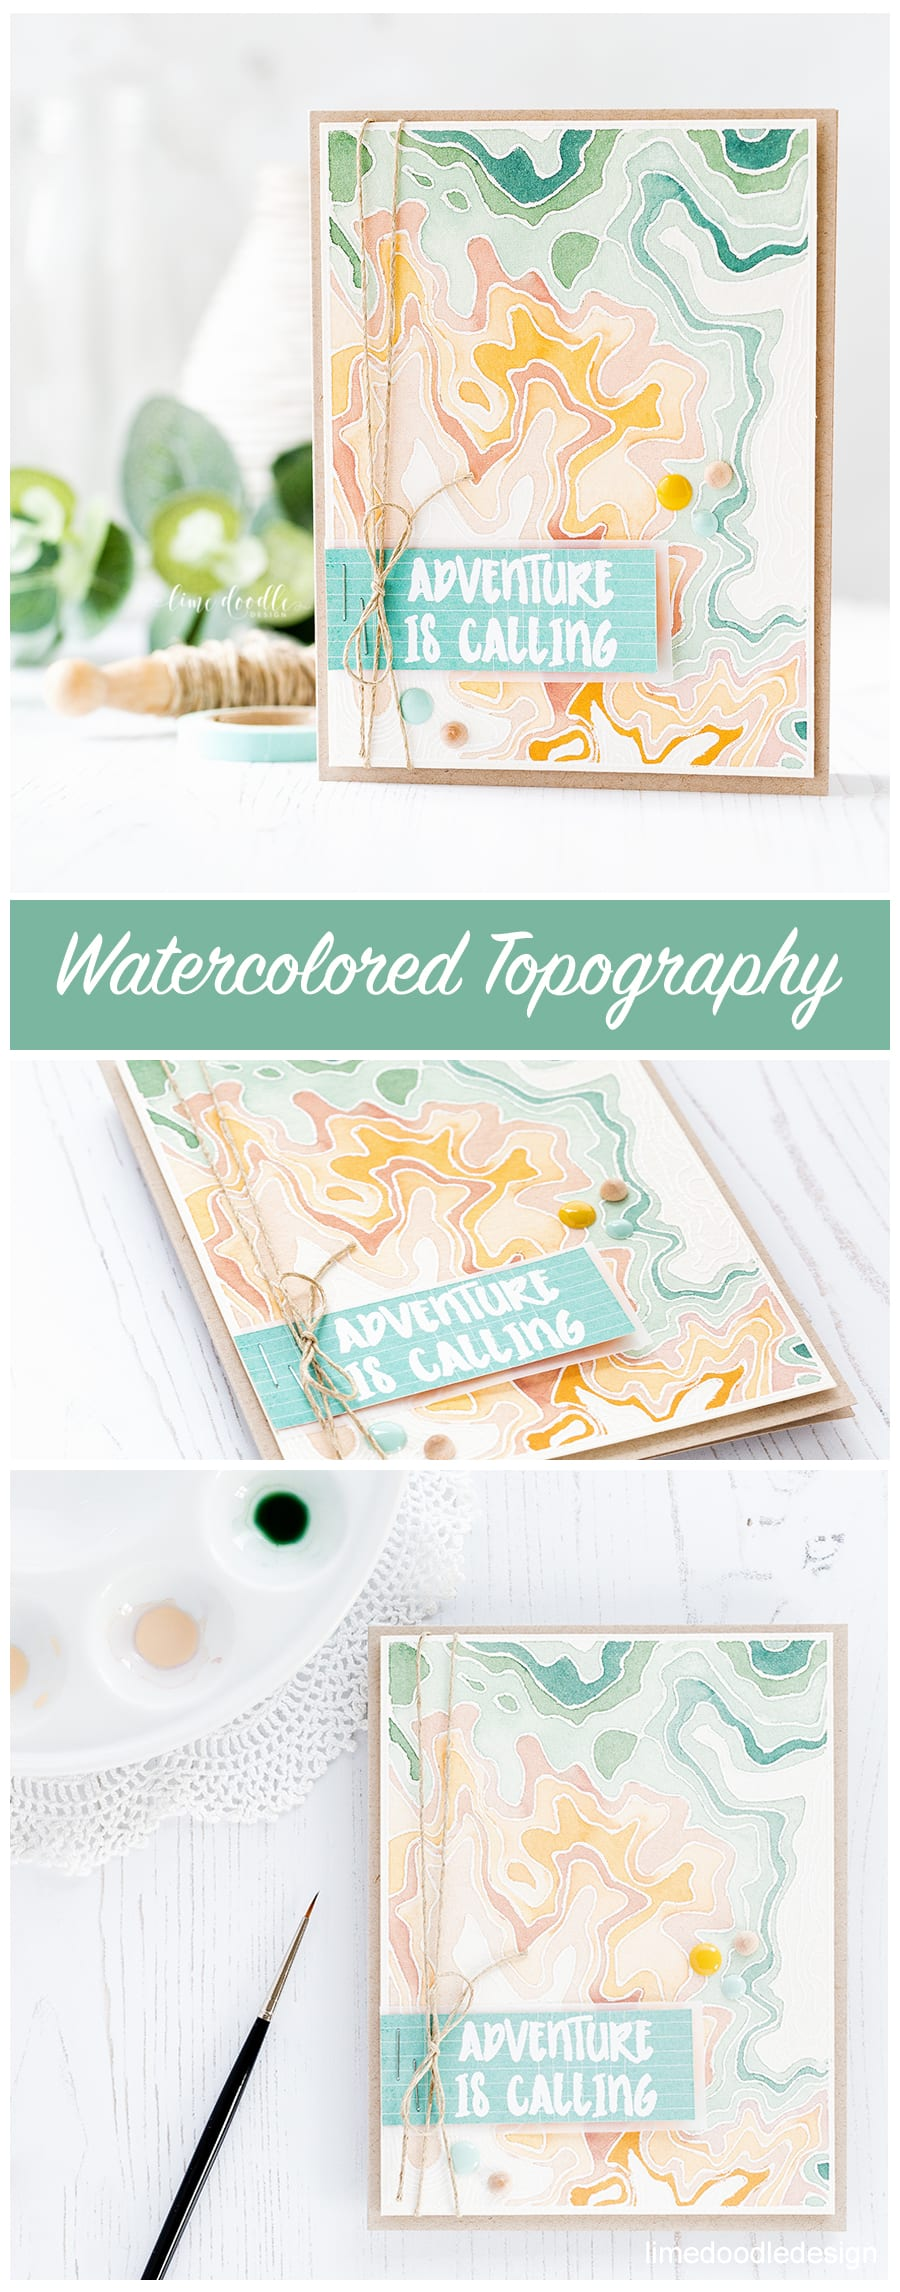 Watercolored topography masculine card by Debby Hughes. Find out more about his card by clicking on the following link: https://limedoodledesign.com/2017/02/watercolored-topography-masculine-card/